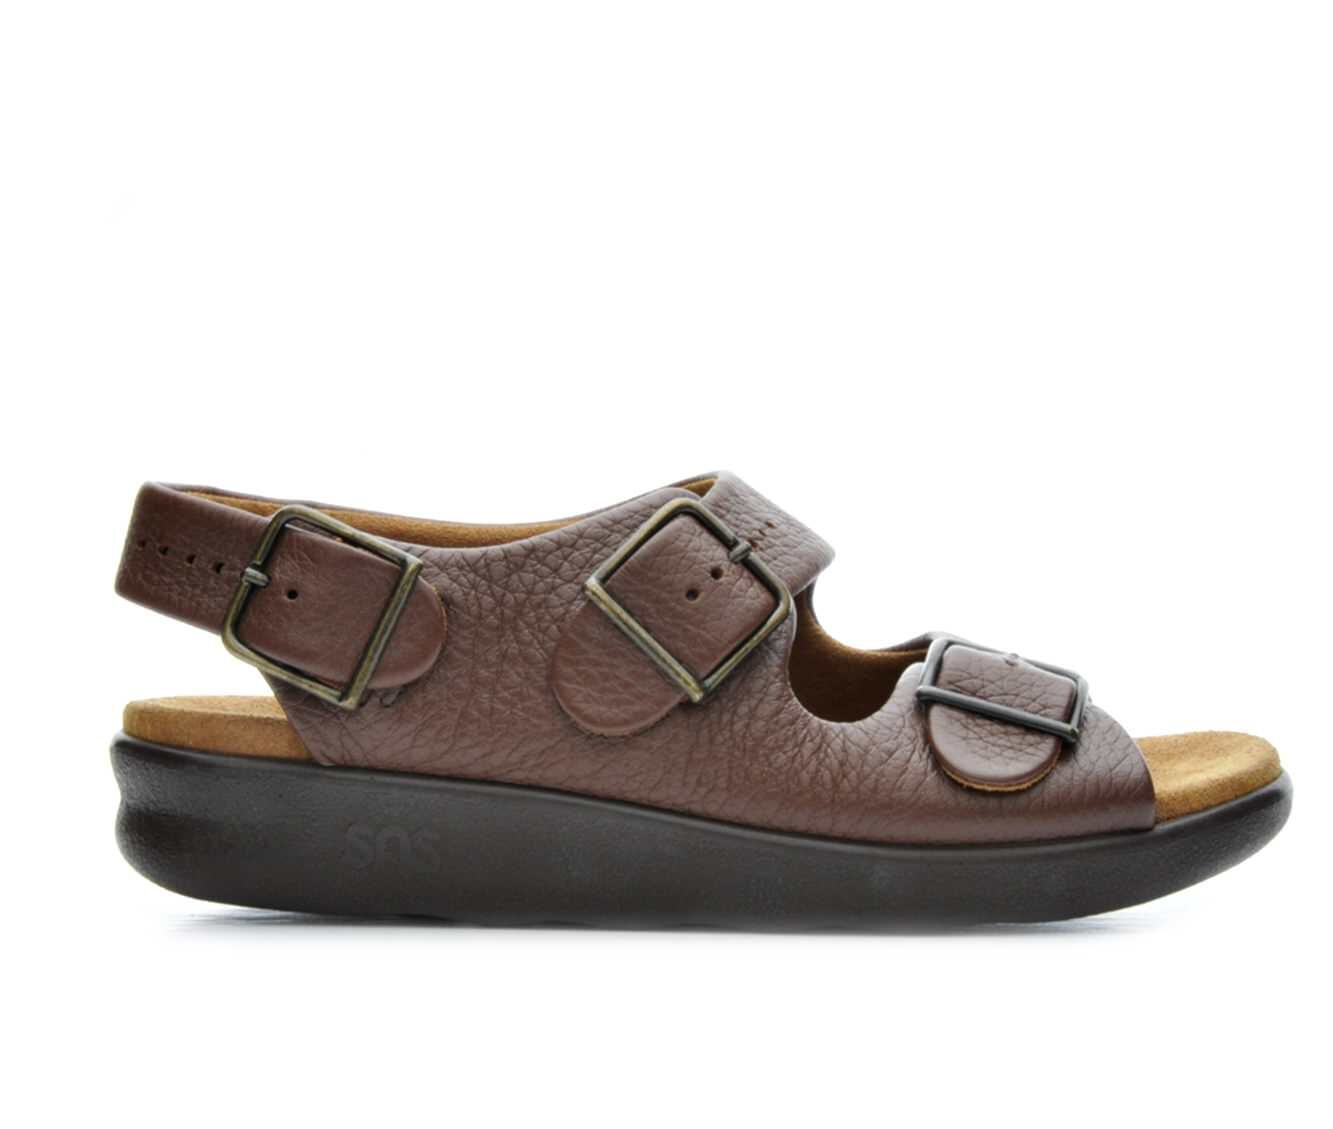 Women's Sas Relaxed Footbed Sandals Amber